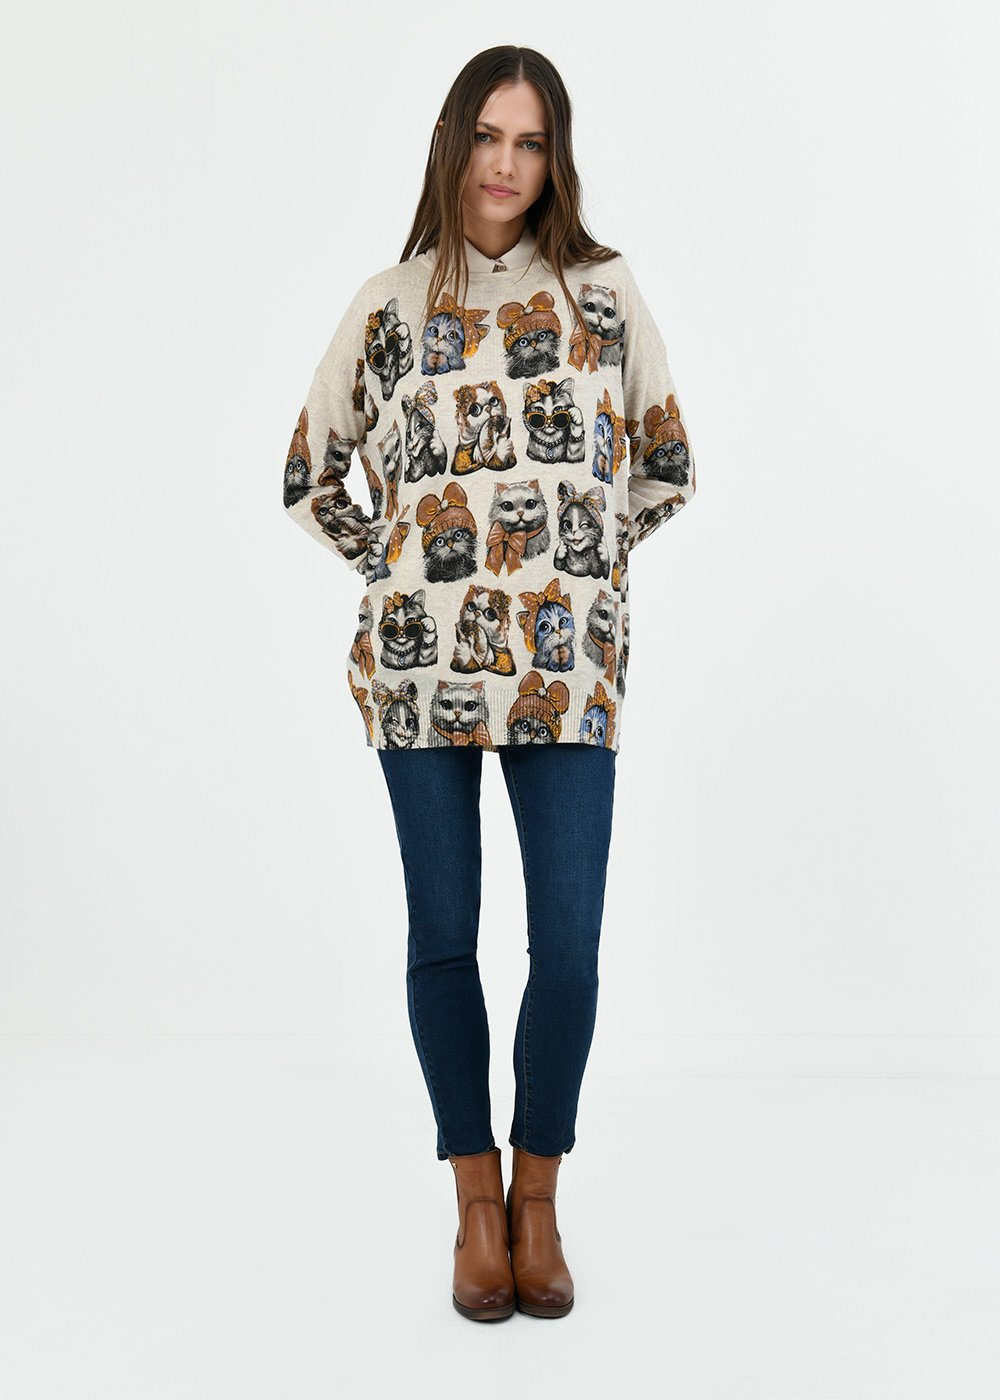 Monique T-shirt with cat print - Light Beige\ Black\ Fantasia - Woman